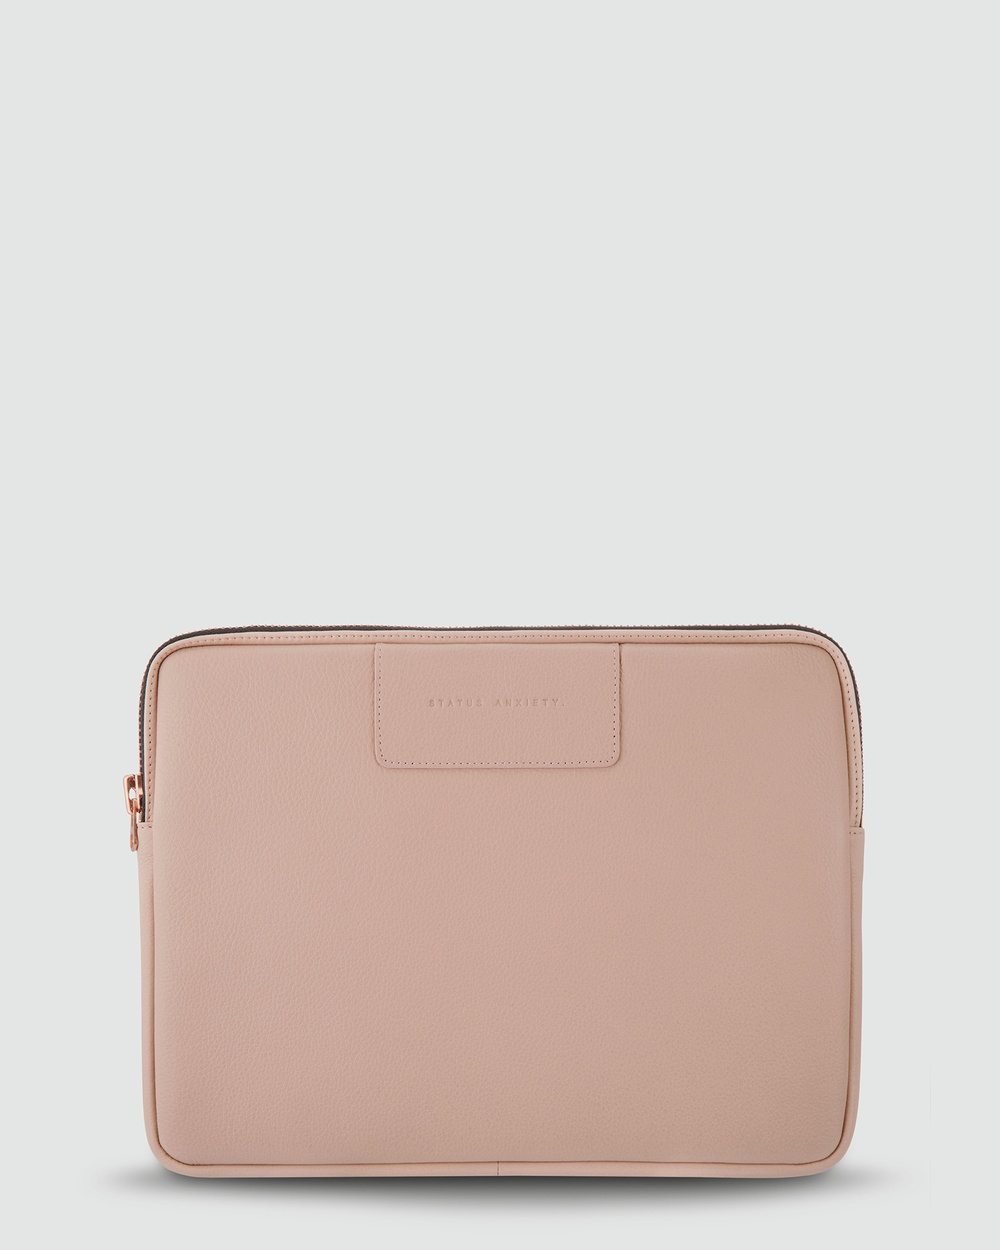 Status Anxiety Before I Leave Laptop Case Tech Accessories Dusty Pink